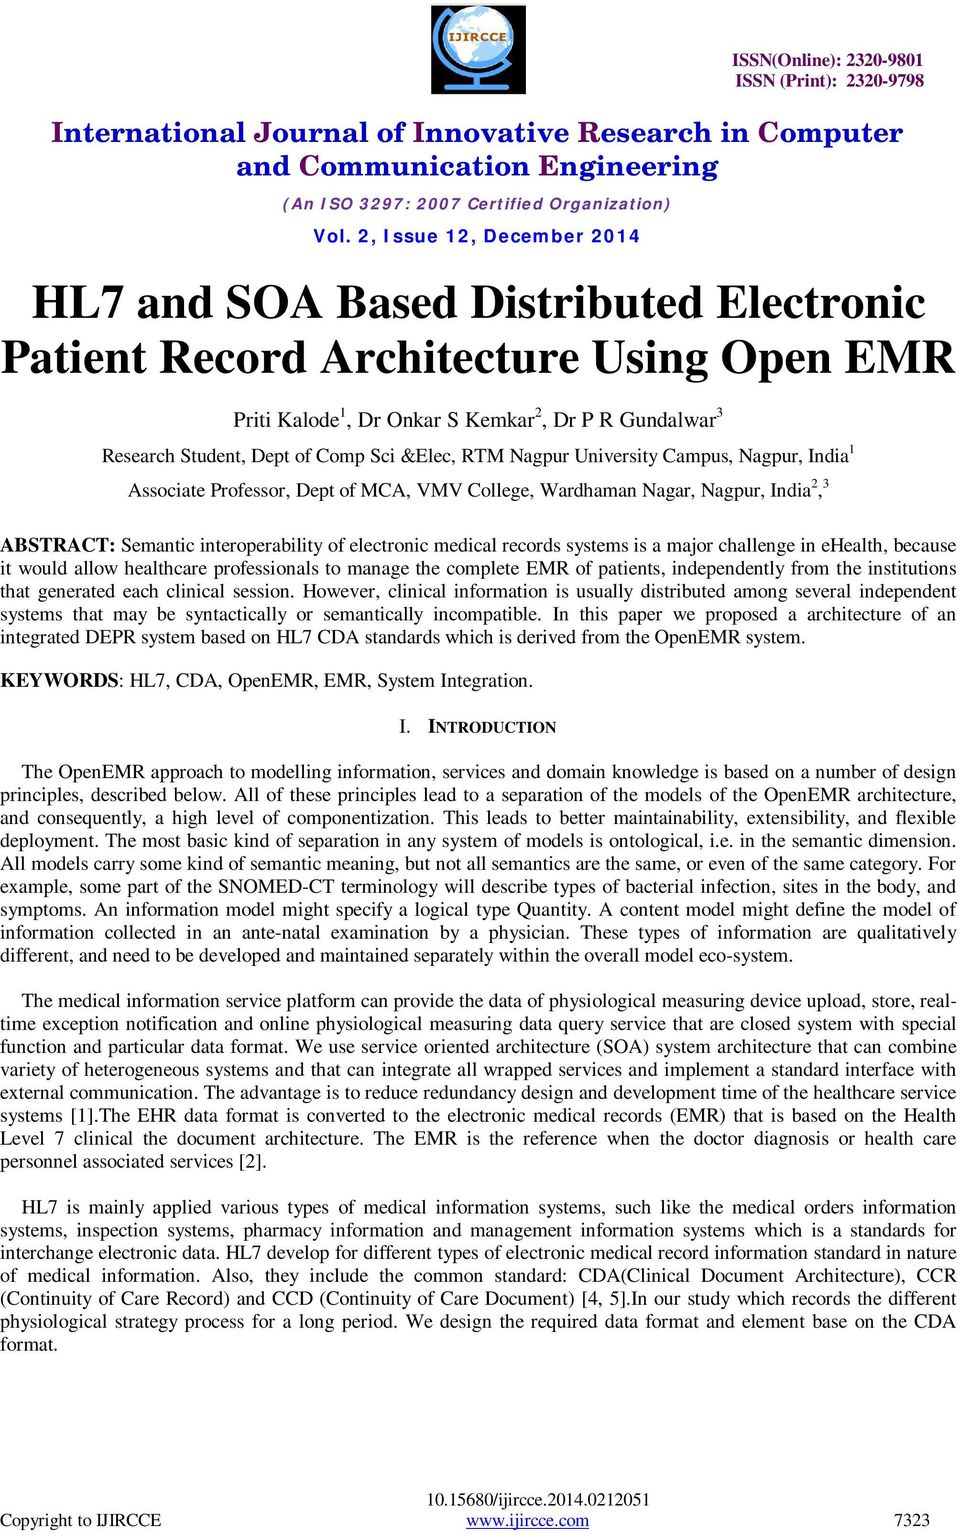 major challenge in ehealth, because it would allow healthcare professionals to manage the complete EMR of patients, independently from the institutions that generated each clinical session.